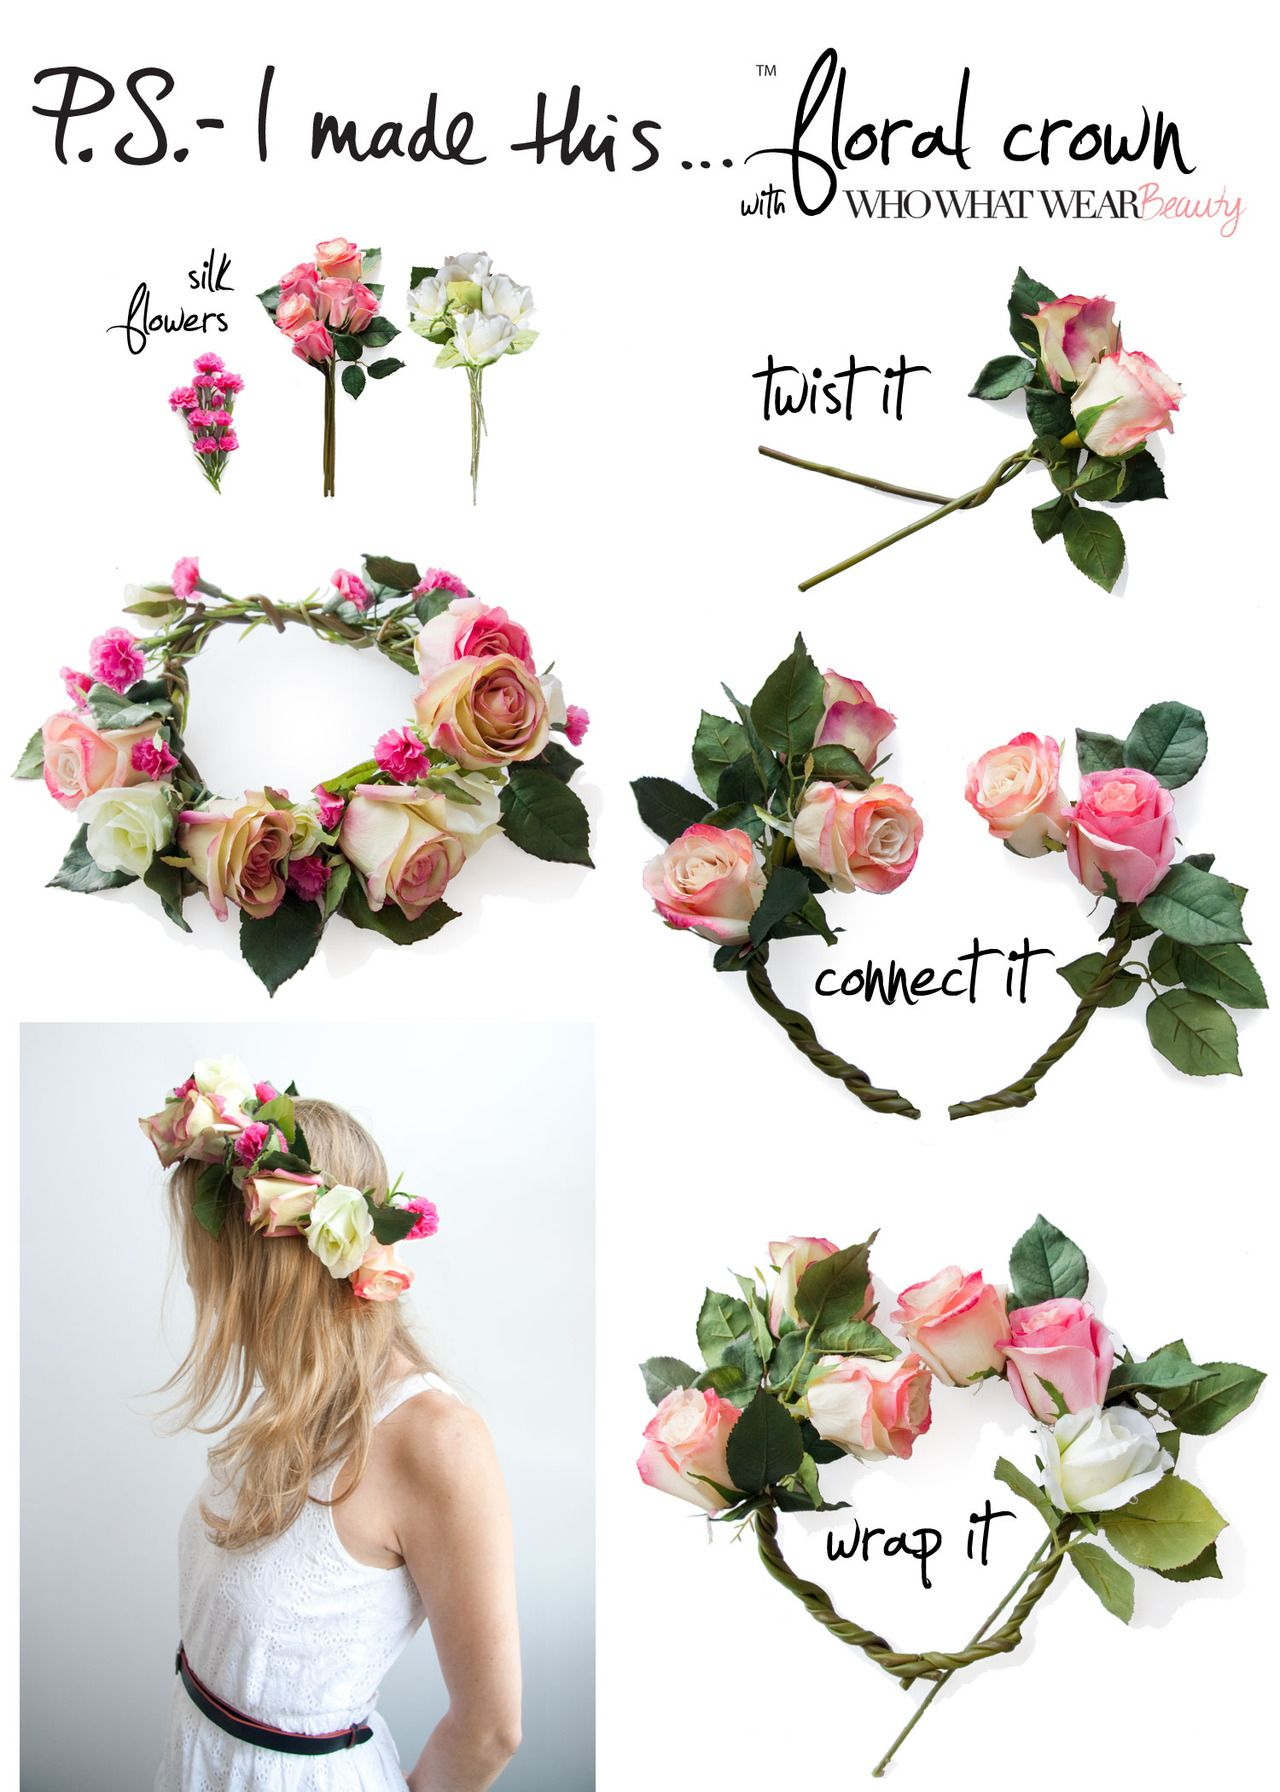 Style loves diy flower crown in 2018 diycrafts pinterest calling all flower girls and princesses easy diy flower crown ta heres an idea add flowing tulle or multiple ribbon strands to the back for an izmirmasajfo